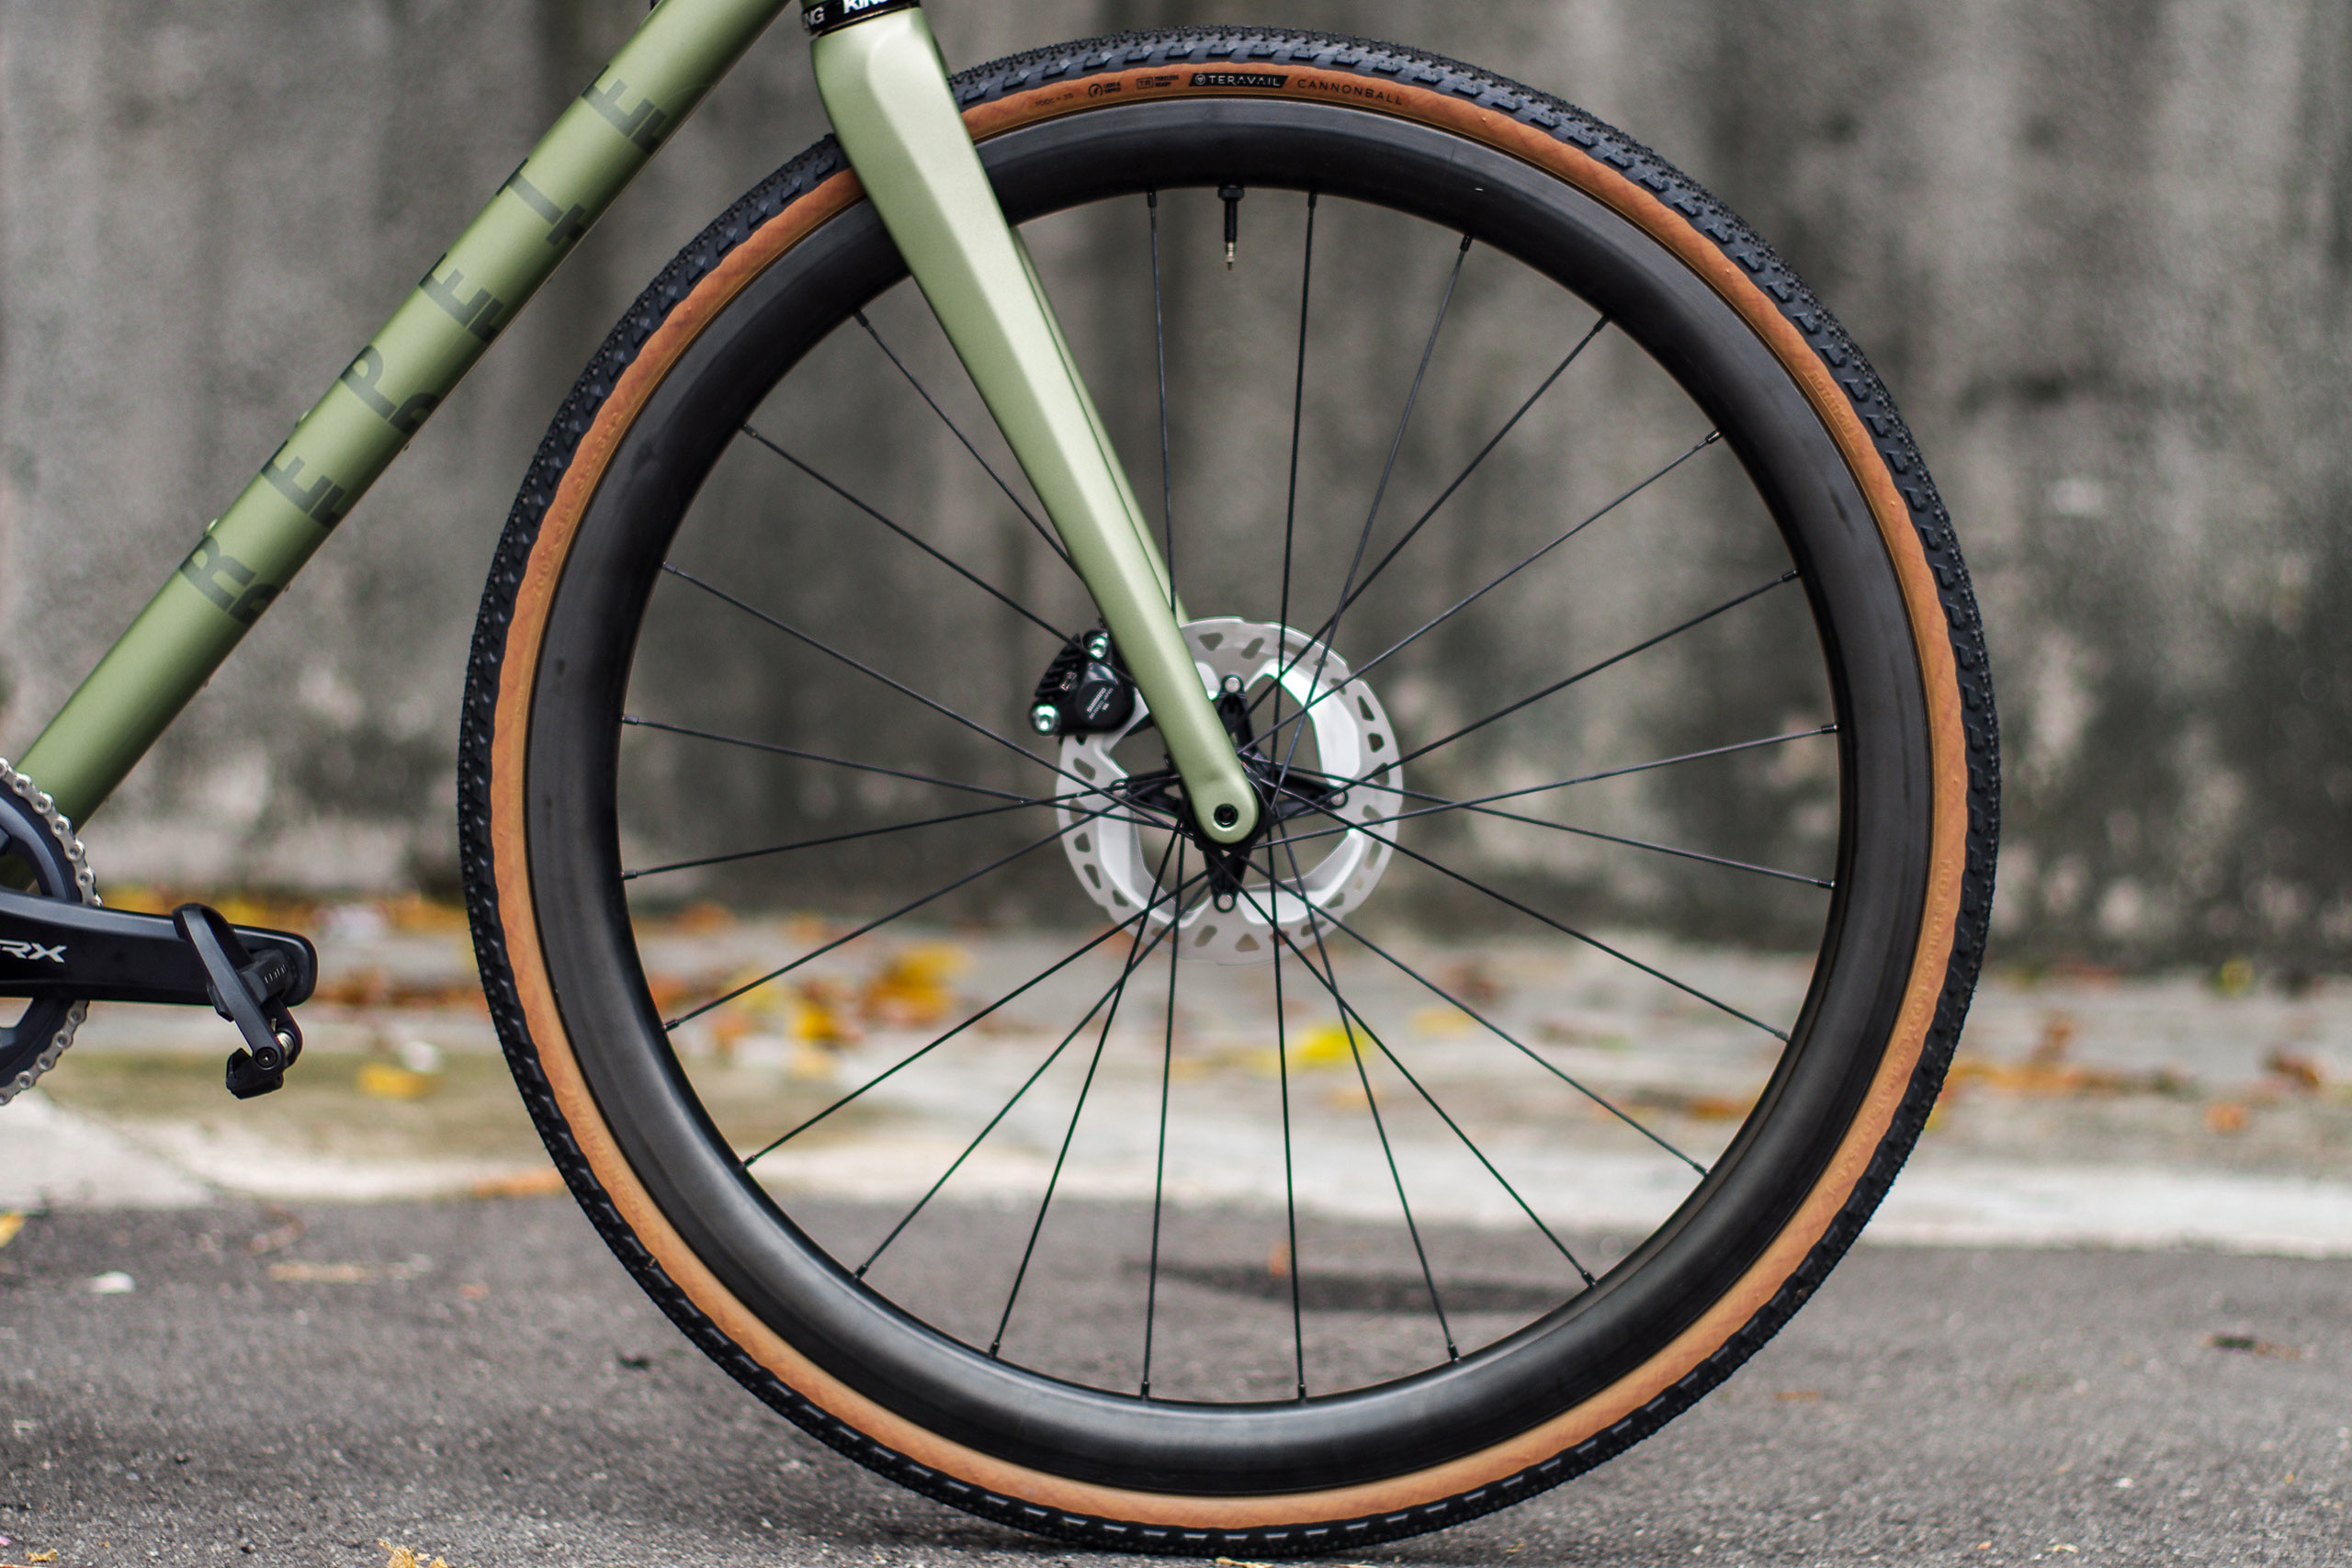 repete_gravel_fitskuul_cycleproject_4